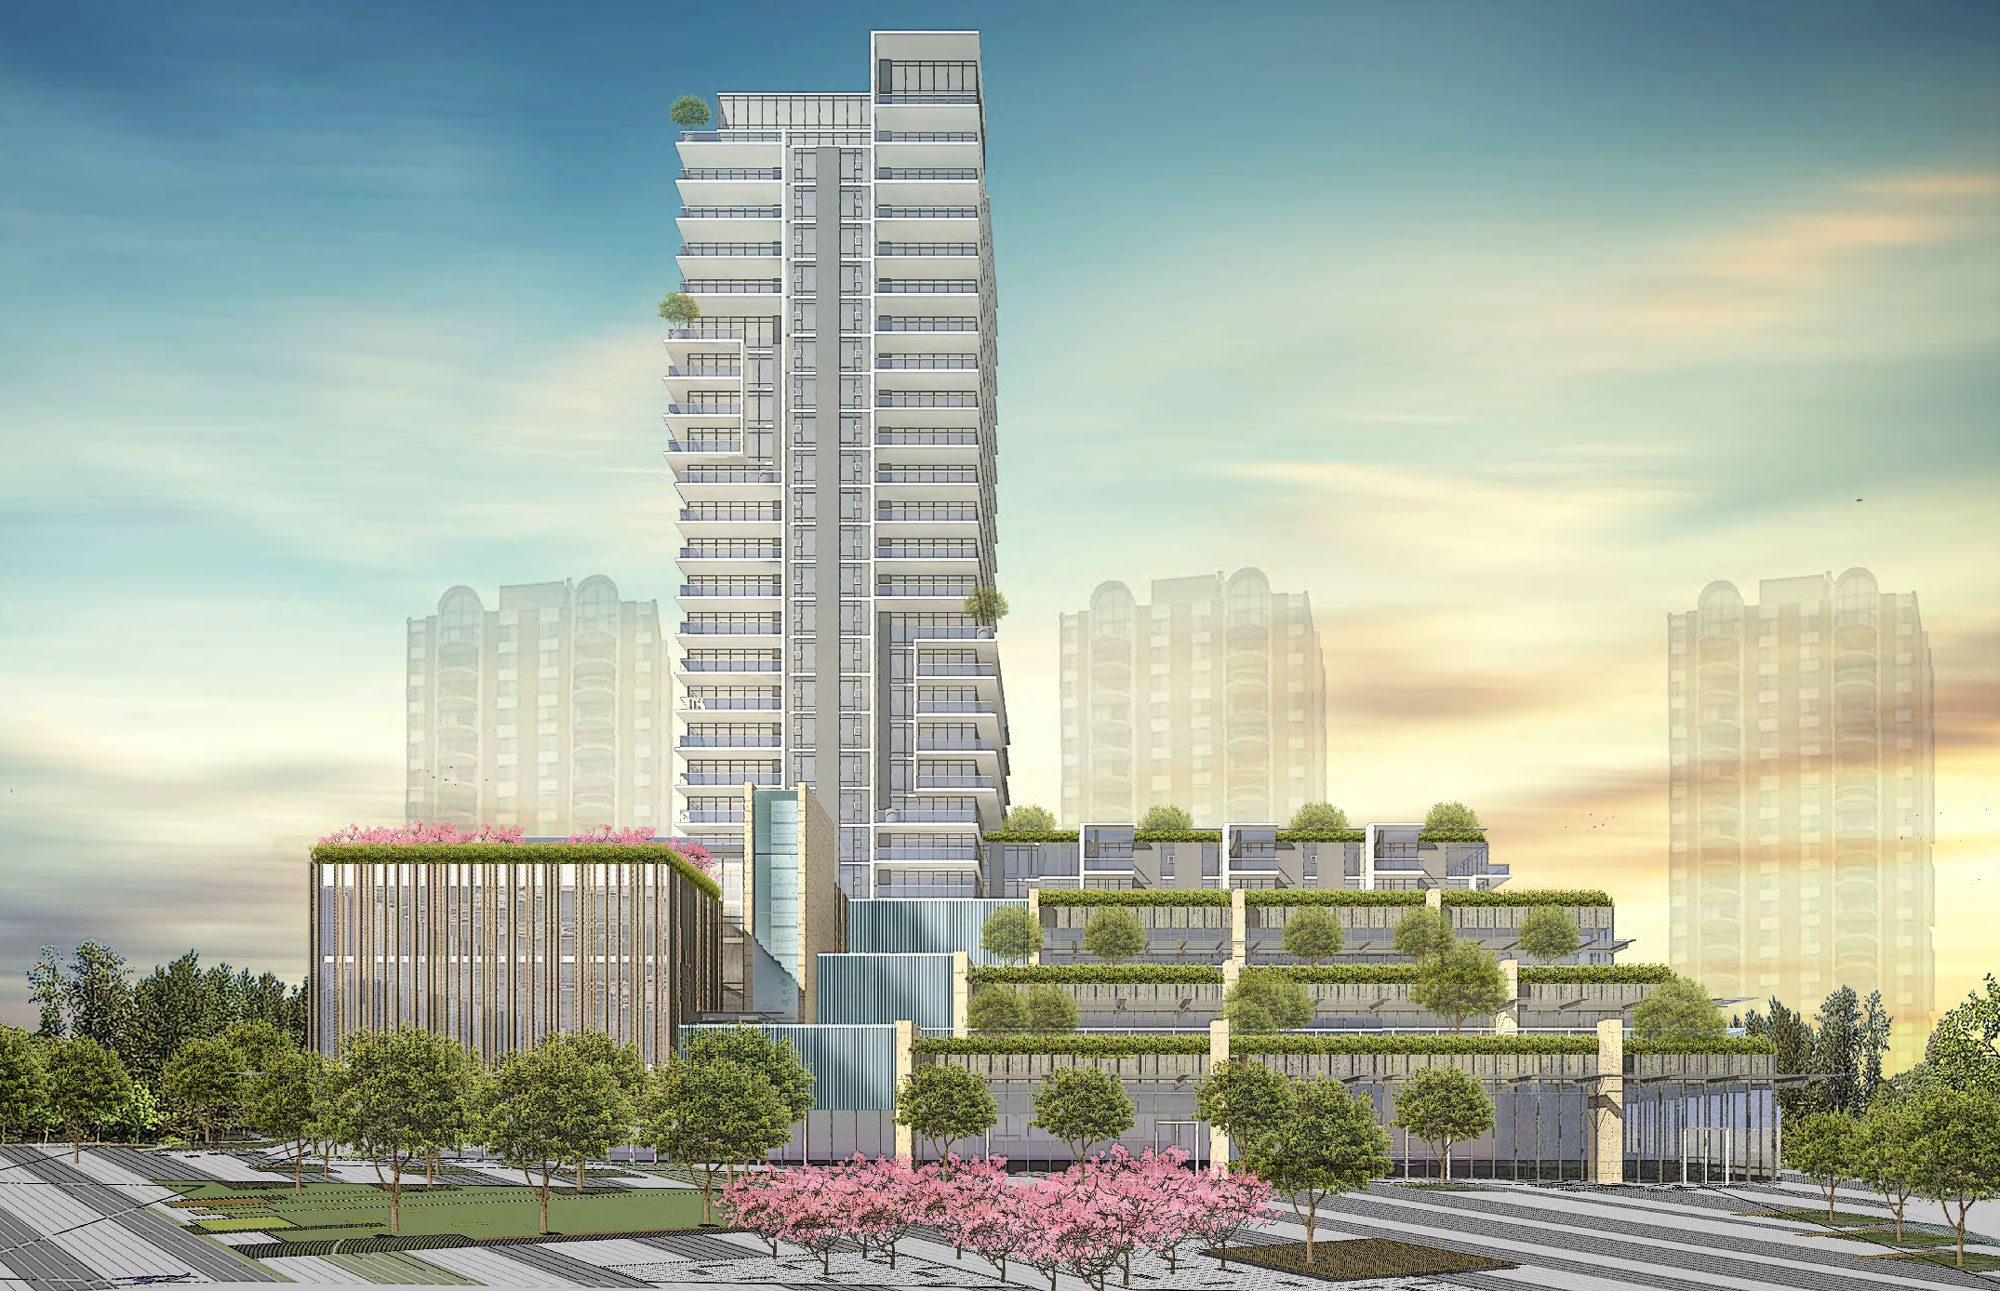 Design for 27-storey tower on Pearson Dogwood lands revealed